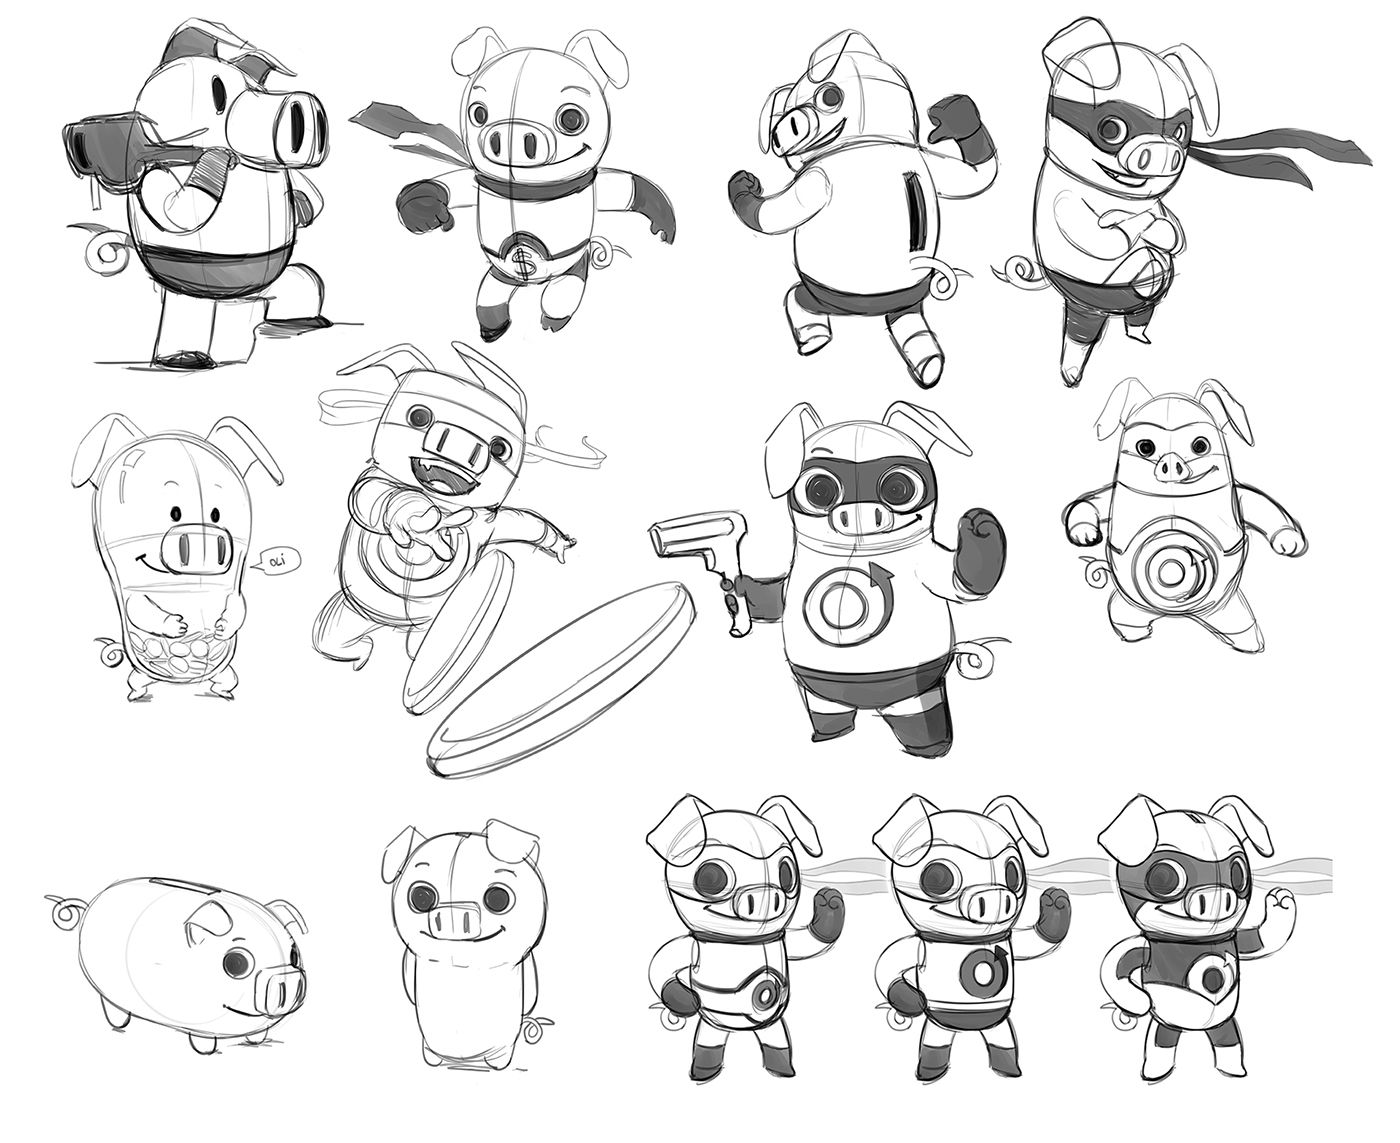 SUPER 10 - character and enviroments design on Behance